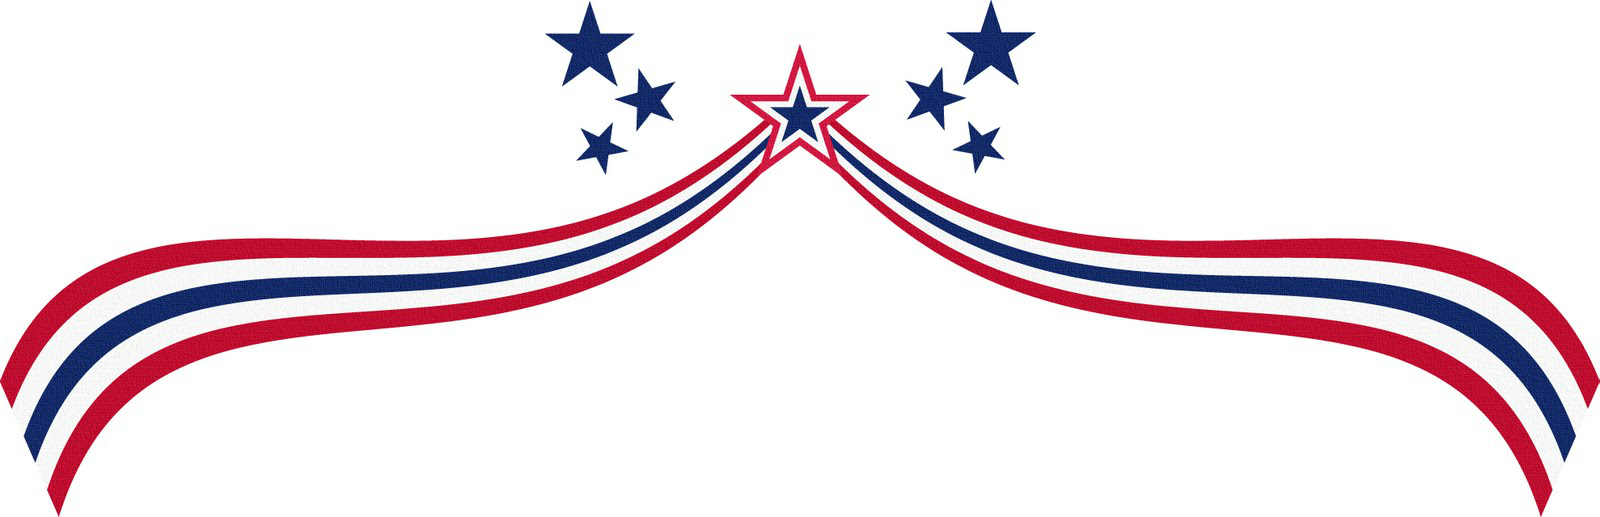 Patriotic Banner Clipart   Free download on ClipArtMag